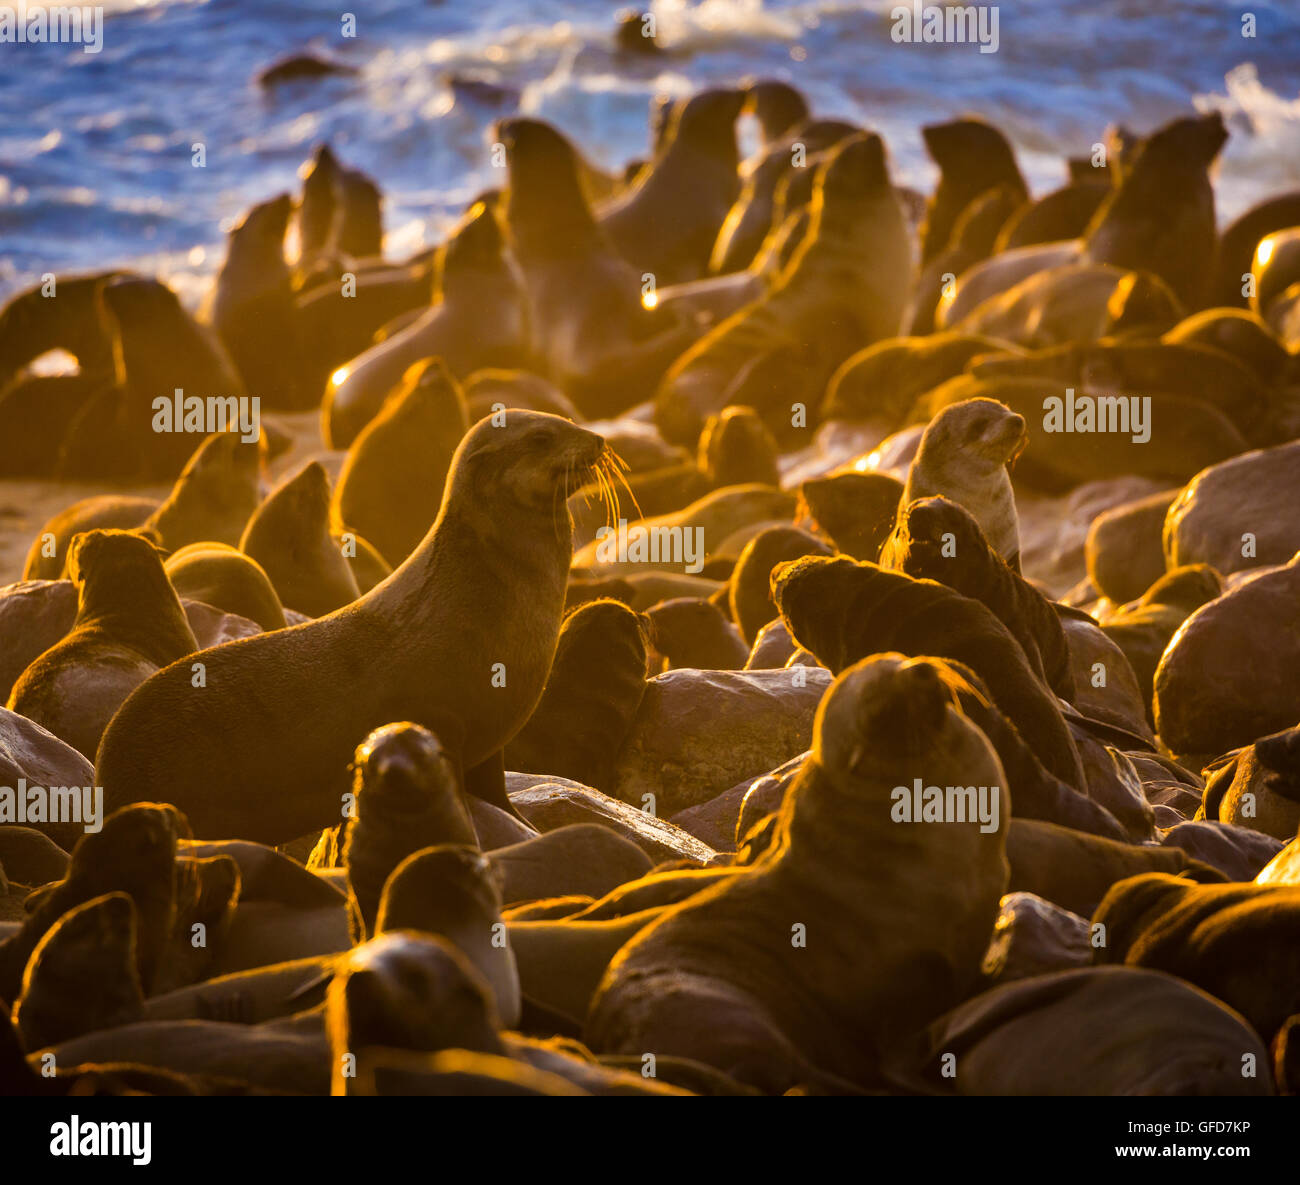 Fur seal colony near Cape Cross in Namibia, Africa - Stock Image